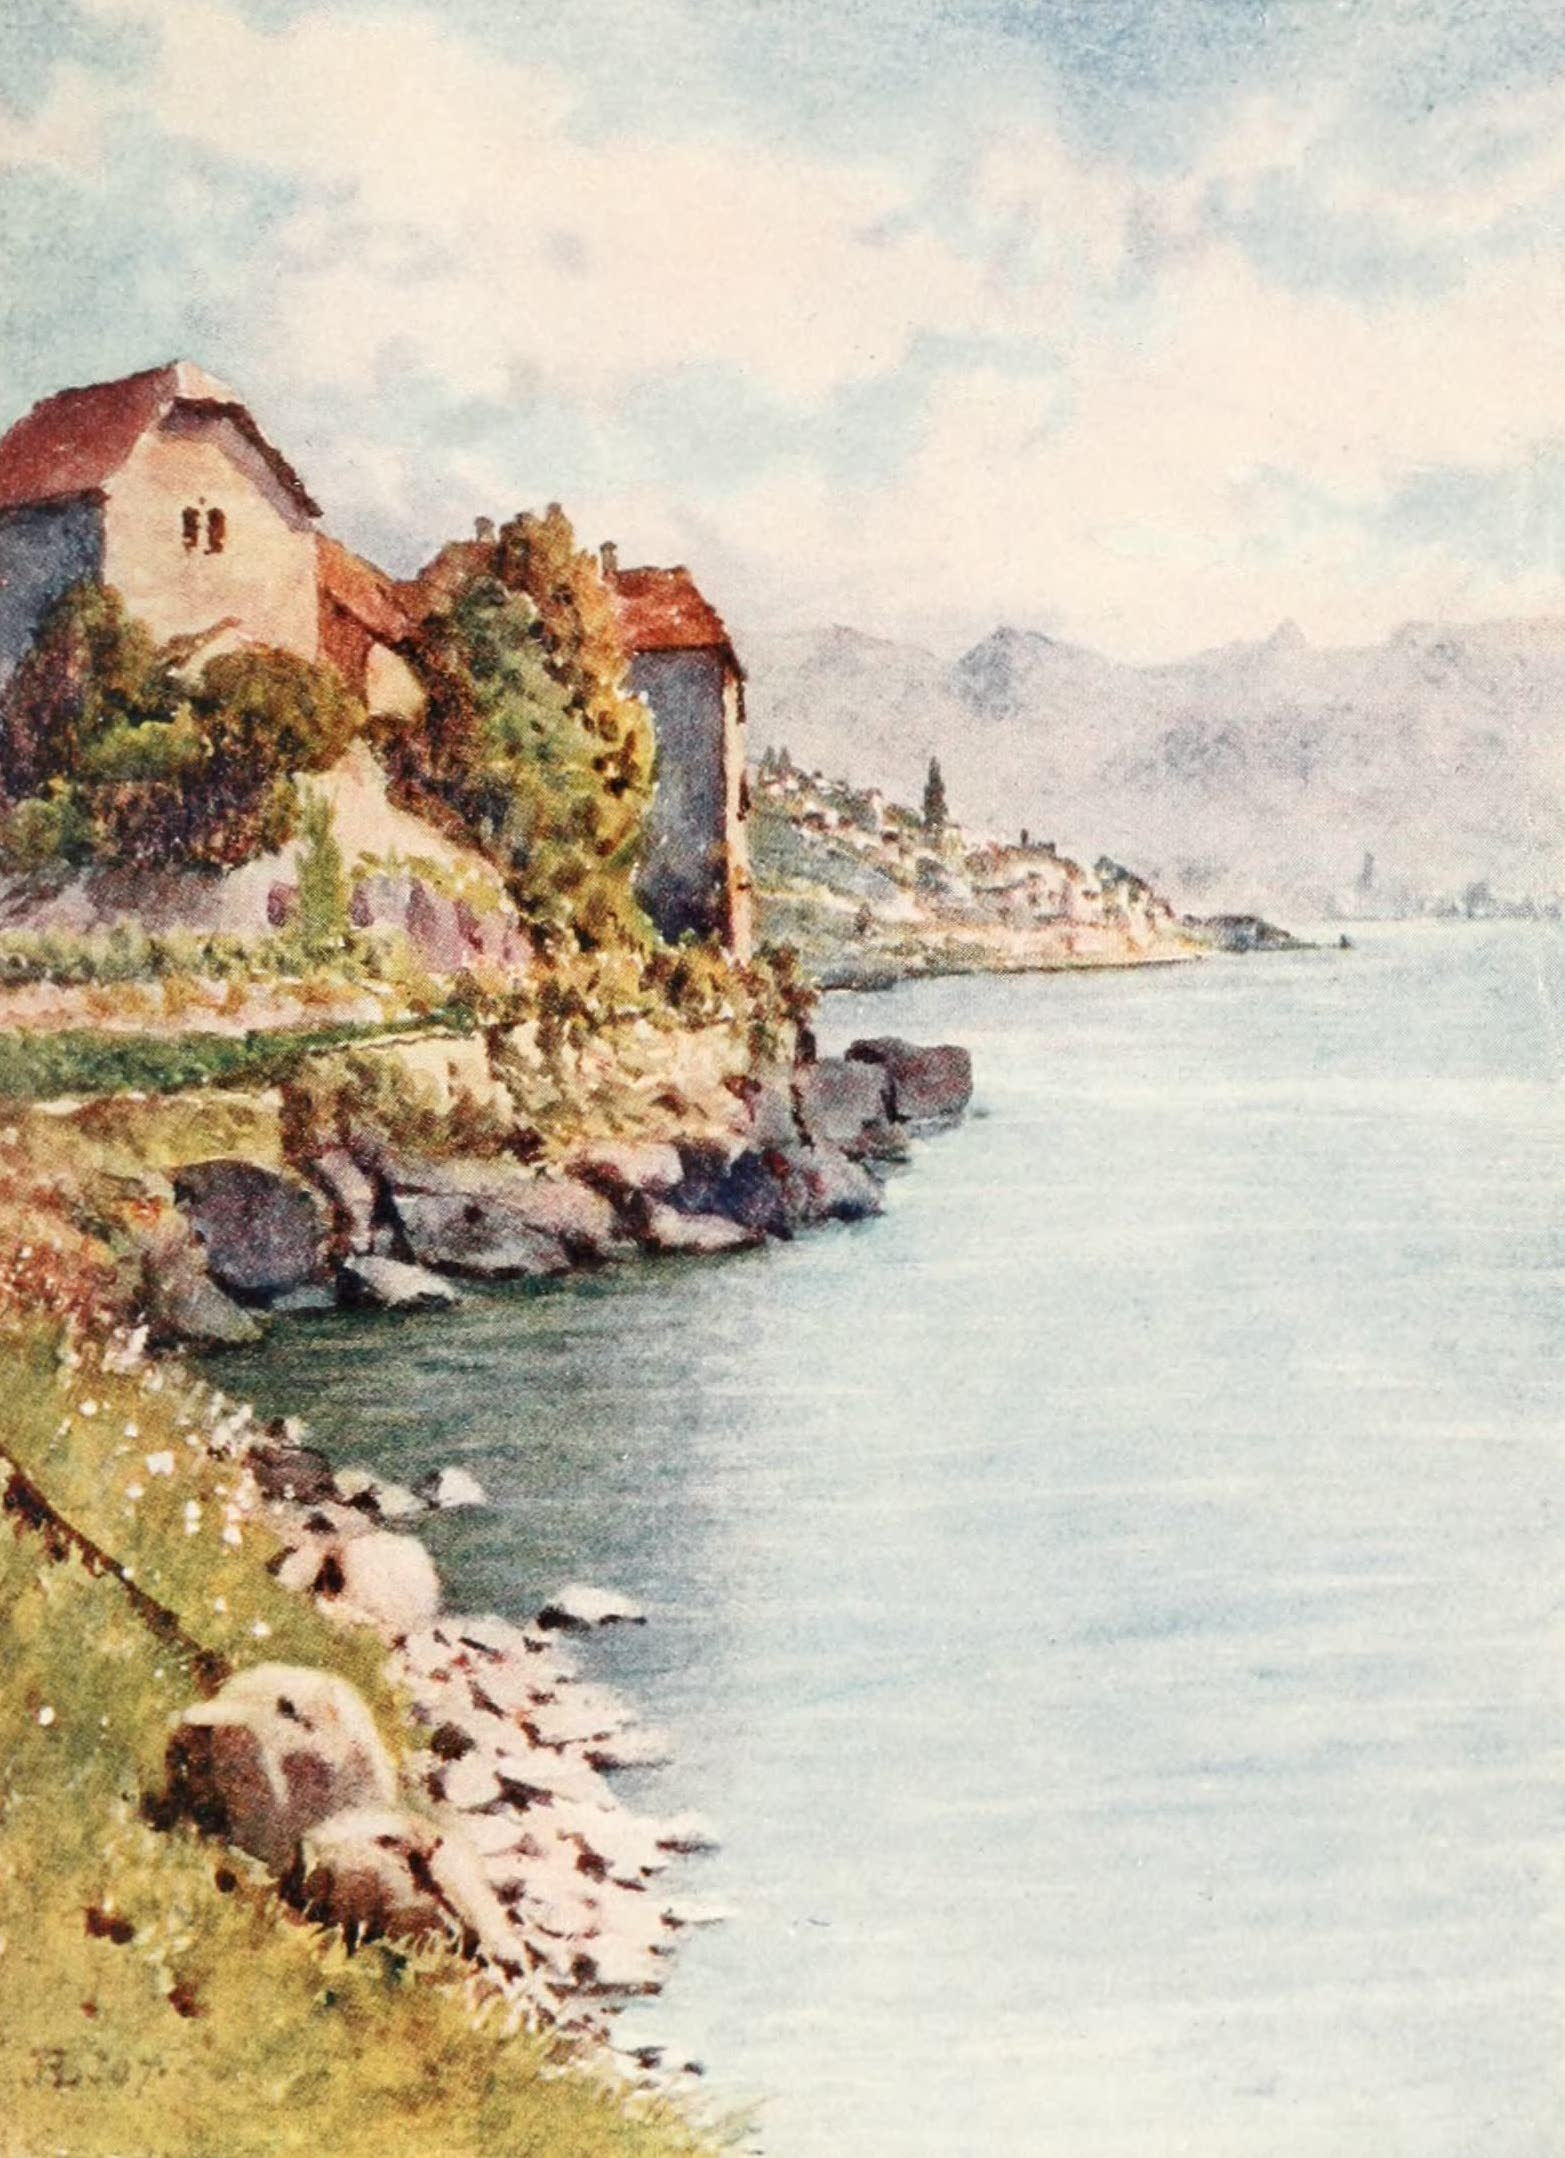 Montreux, Painted and Described - The Chateau Glerolles and St. Saphorin (1908)